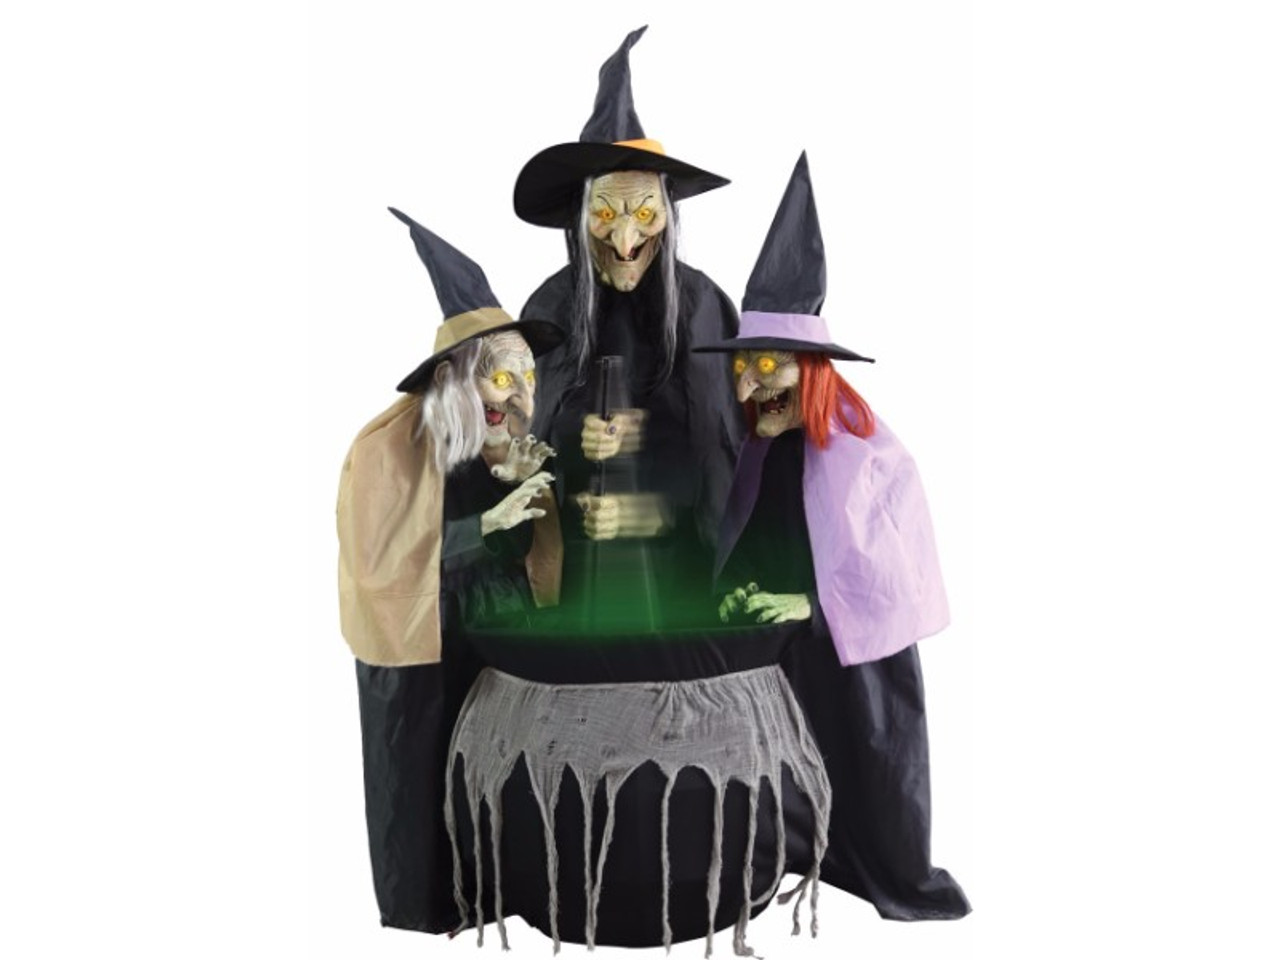 three witches are huddled around a large cauldron that you hear bubbling and brewing the